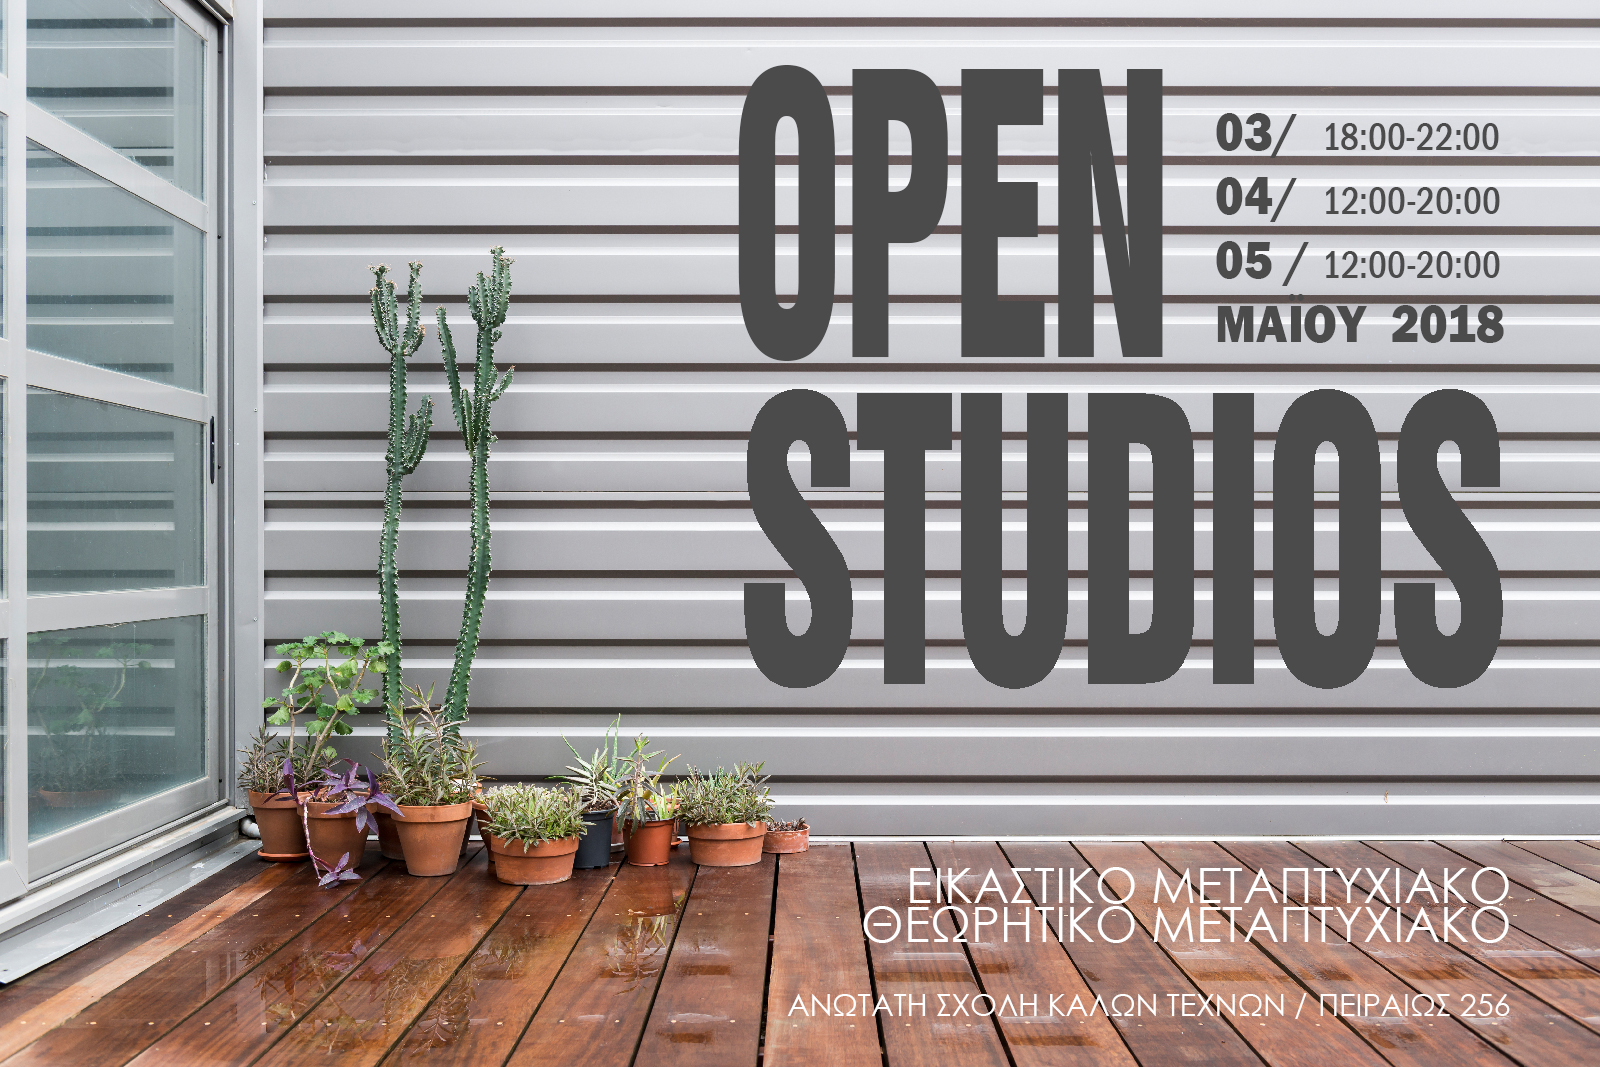 Open Studios 2018, Master in Fine Arts, Athens School of Fine Arts, Maria Mavropoulou